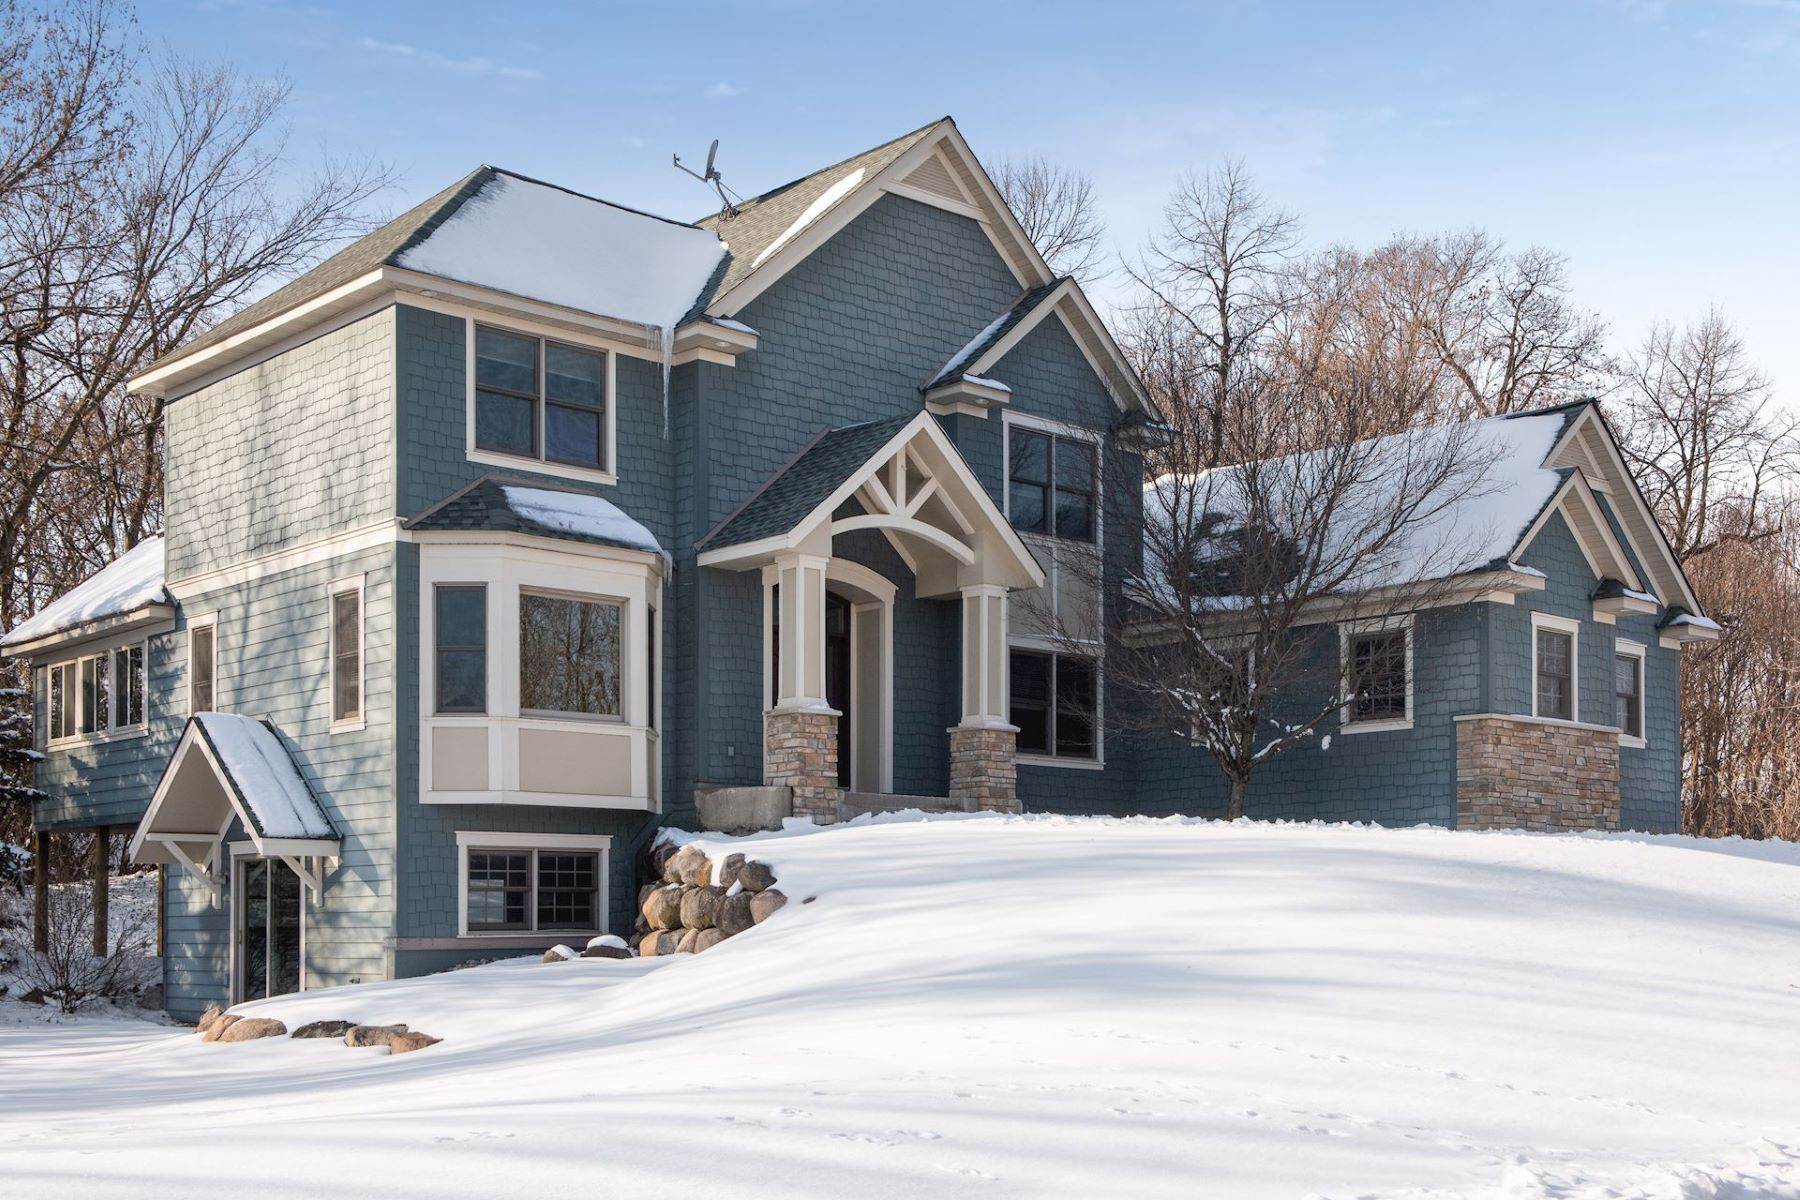 Single Family Homes for Sale at Gorgeous, Updated French Country Two-Story Home 2870 Basswood Drive Minnetrista, Minnesota 55364 United States